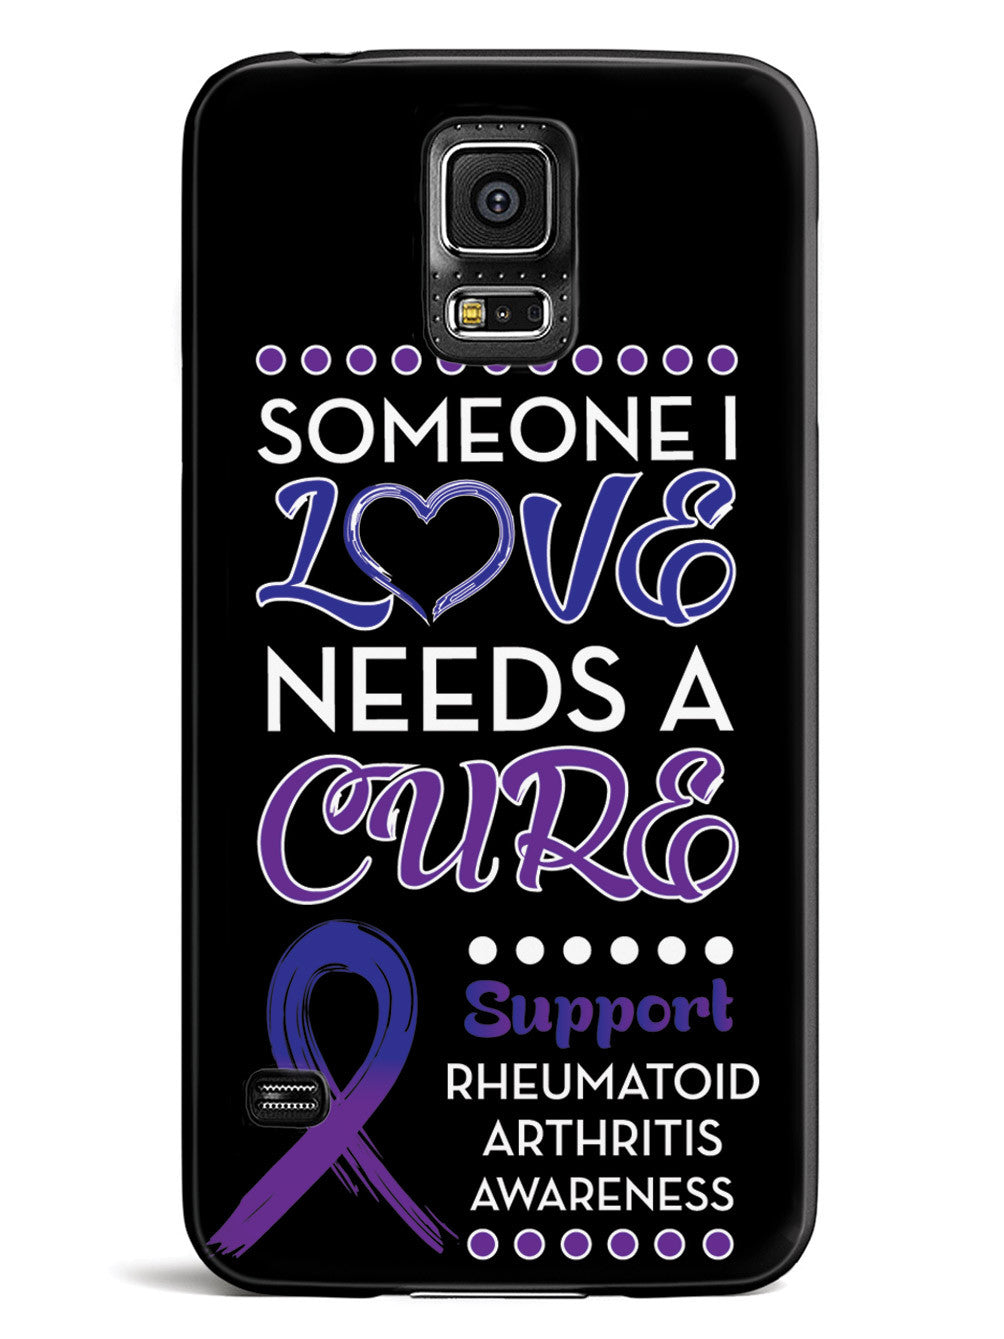 Someone I Love - Rheumatoid Arthritis Awareness Case